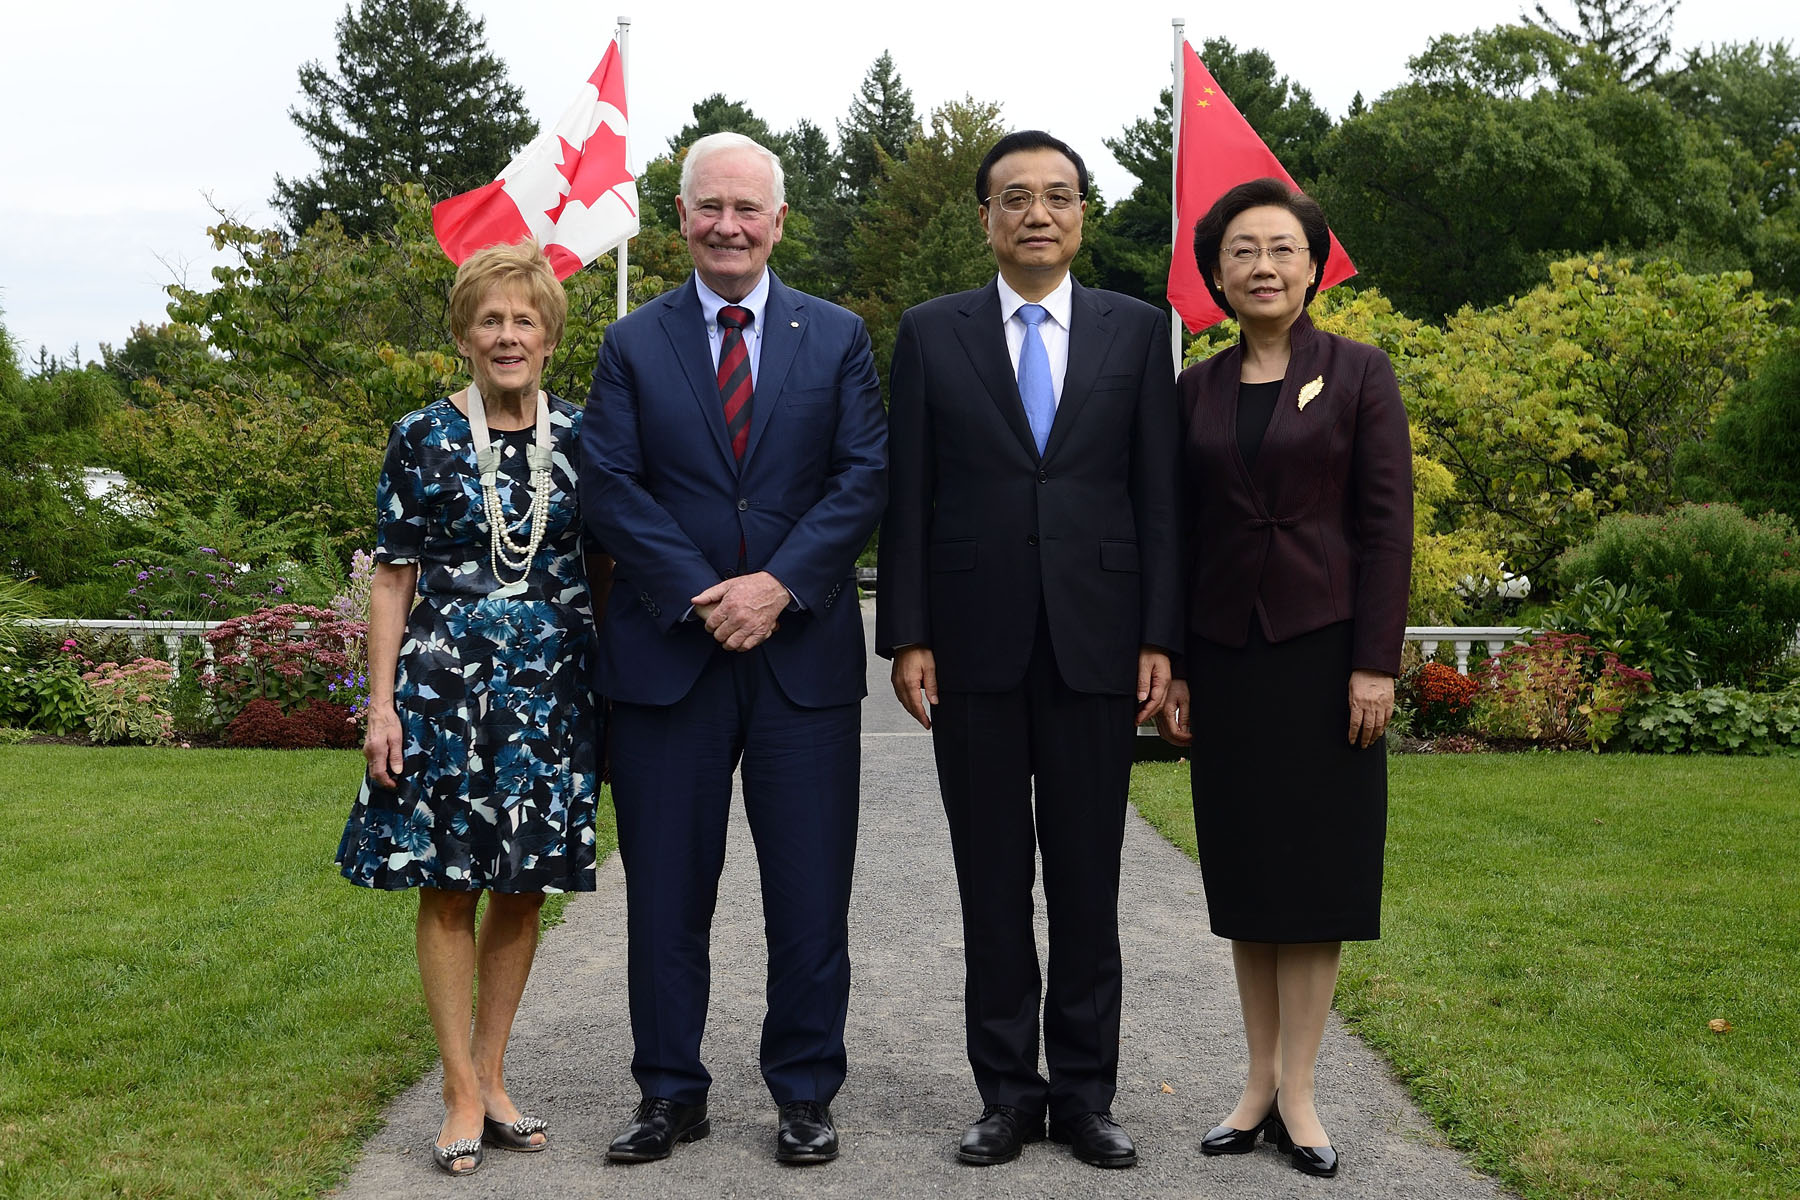 Premier Li and madam Cheng were conducting an official visit to Canada from September 21 to 24, 2016.